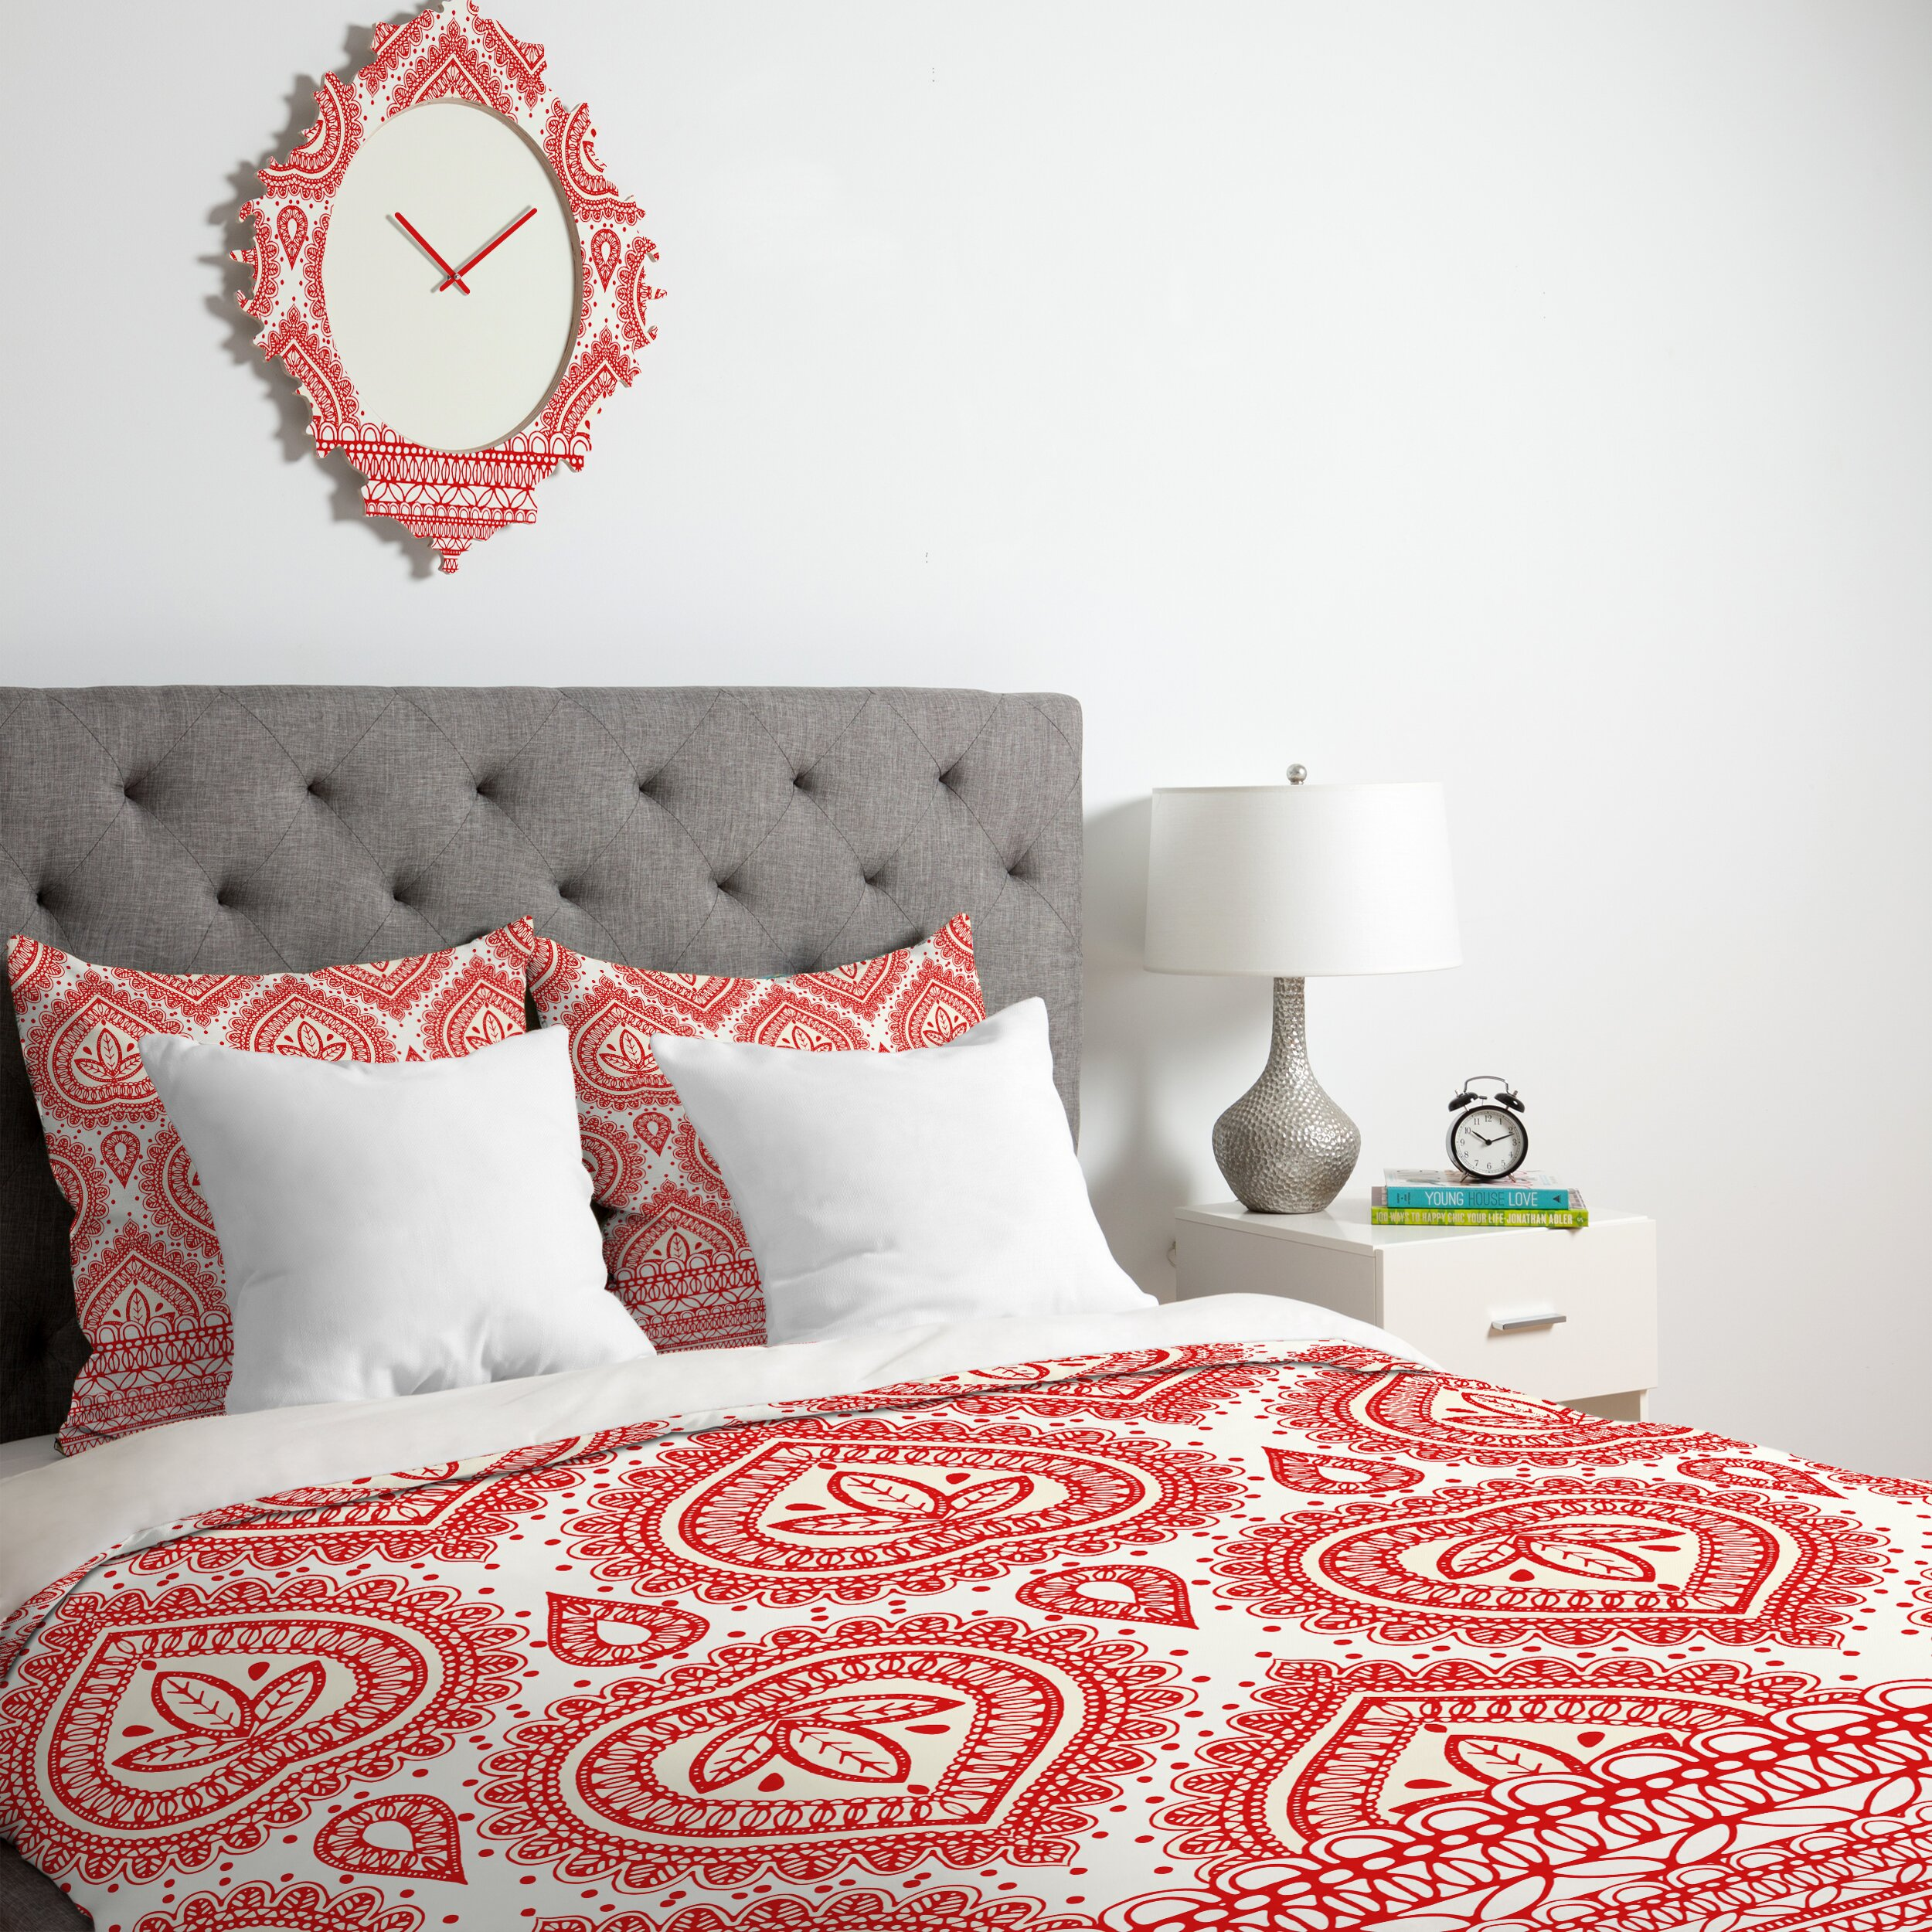 Deny designs aimee st hill decorative duvet cover for Decorative bed covers